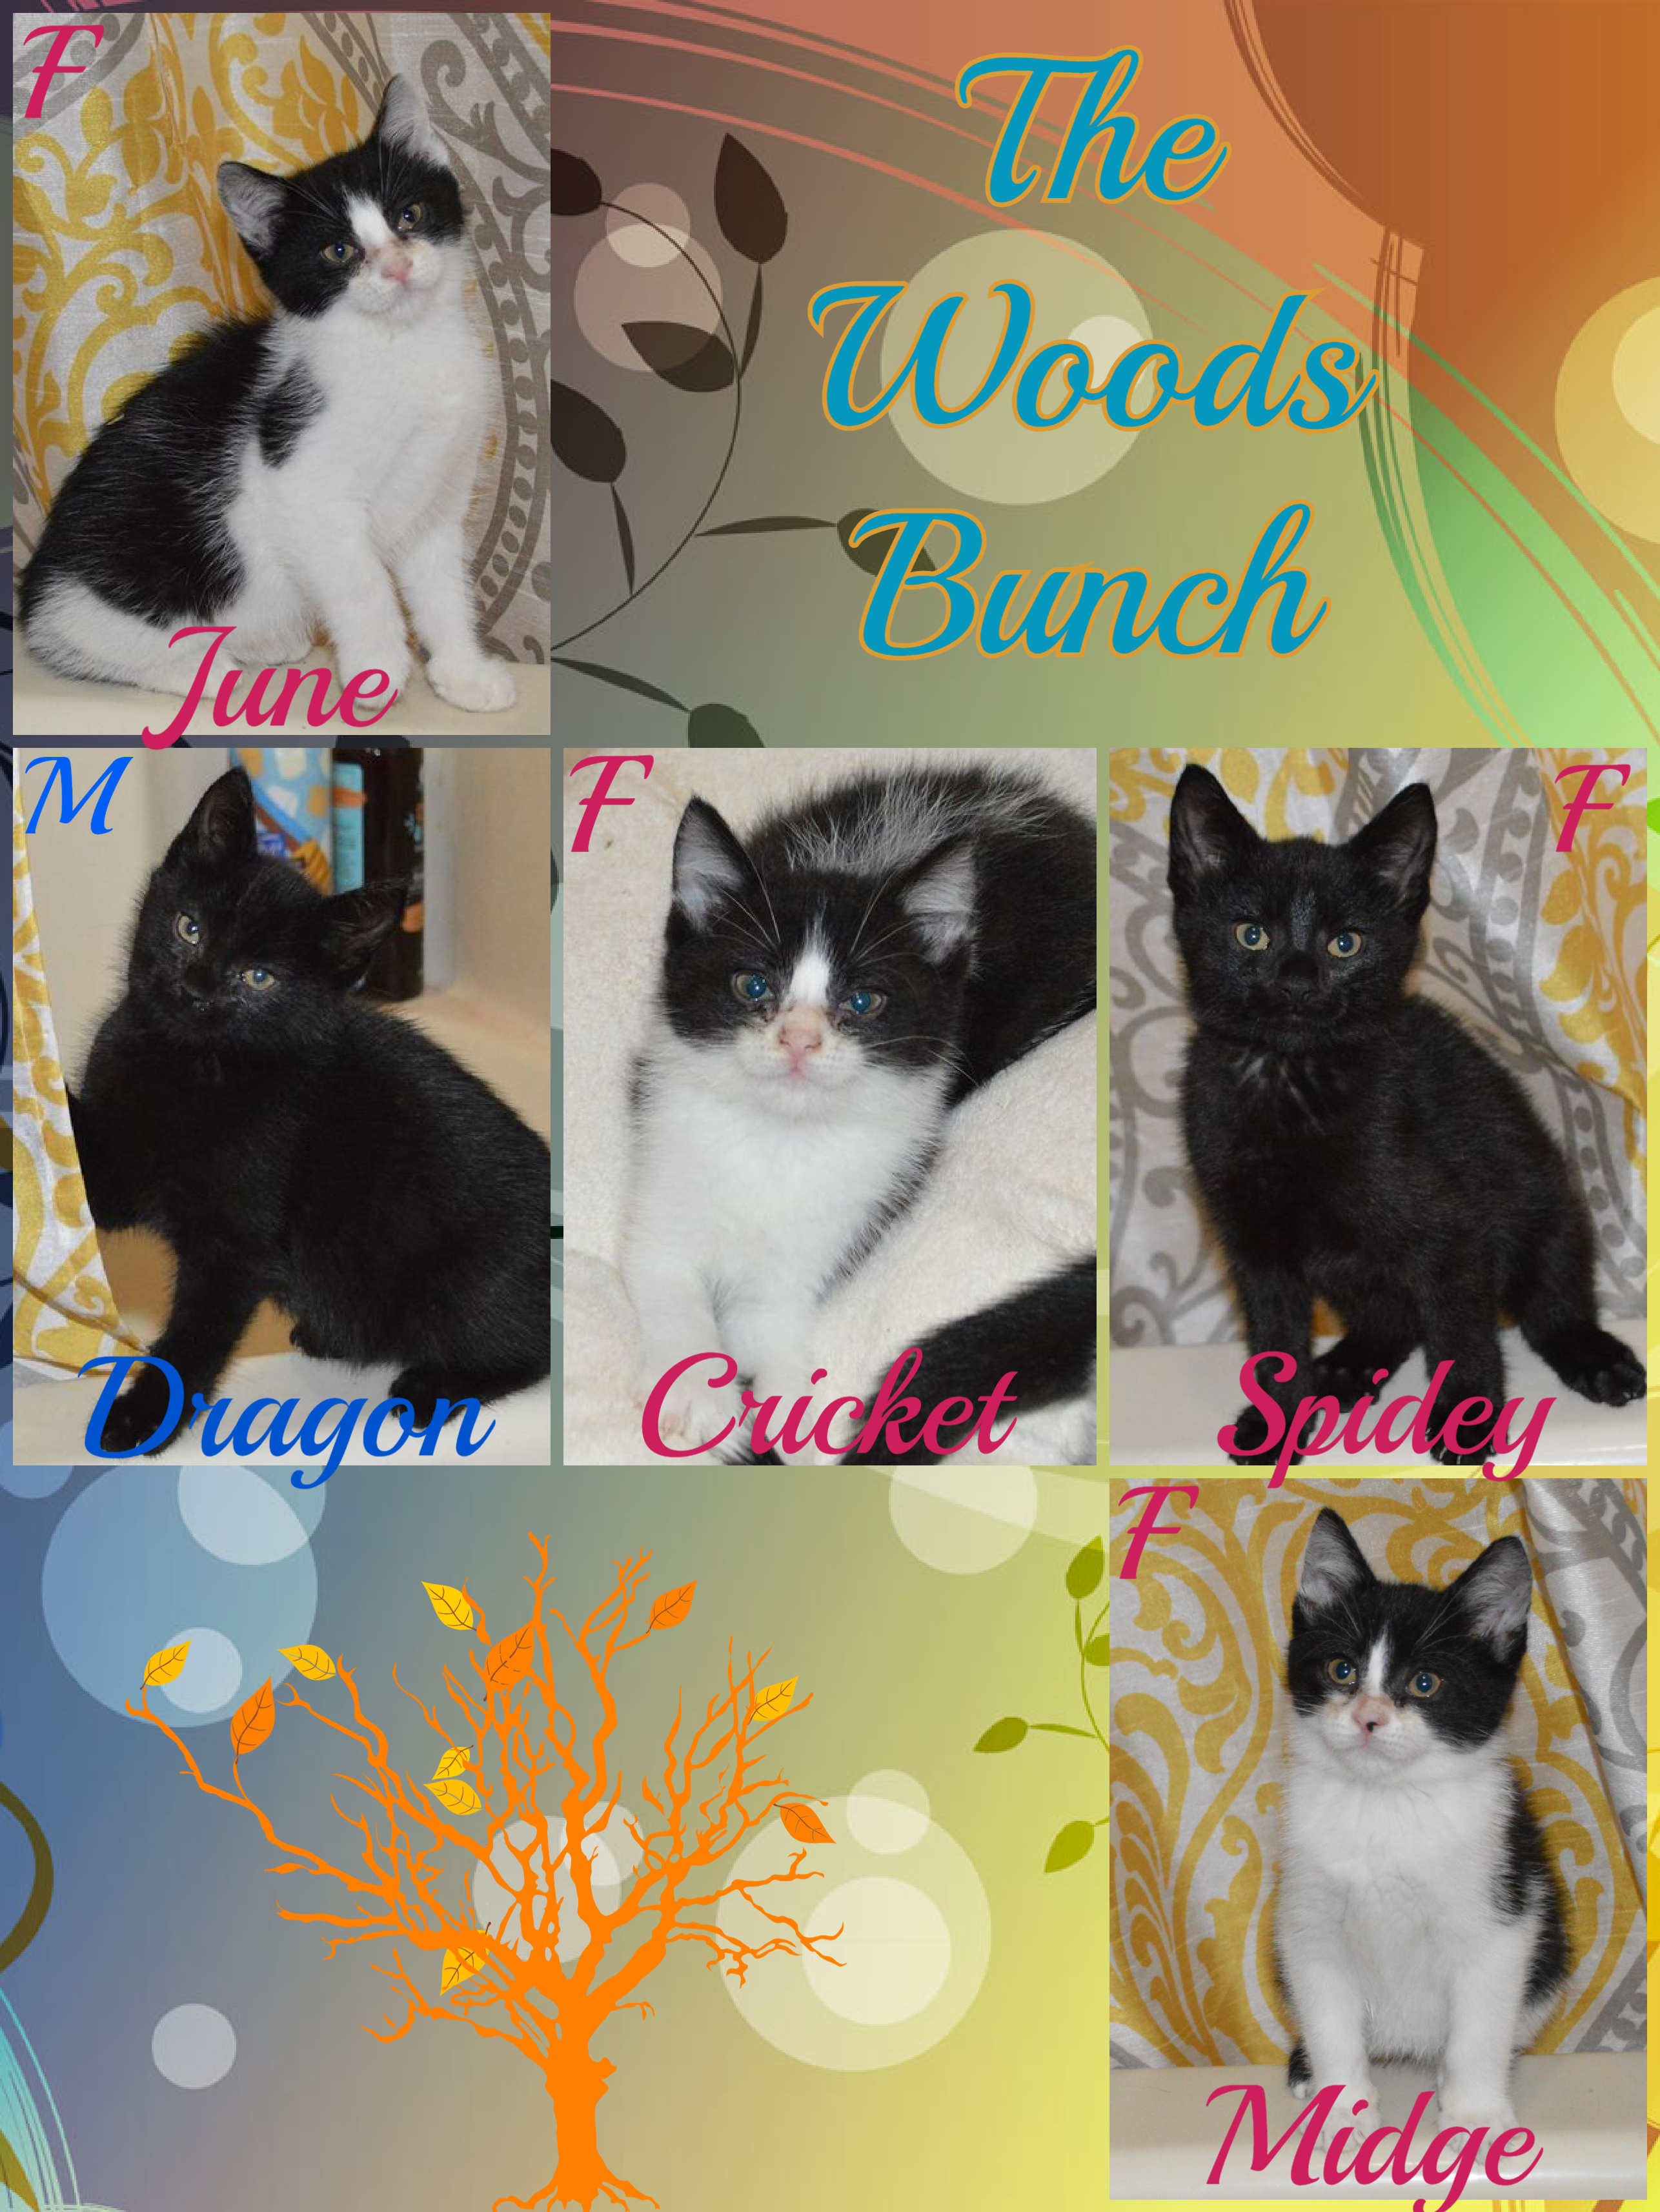 WOODS BUNCH